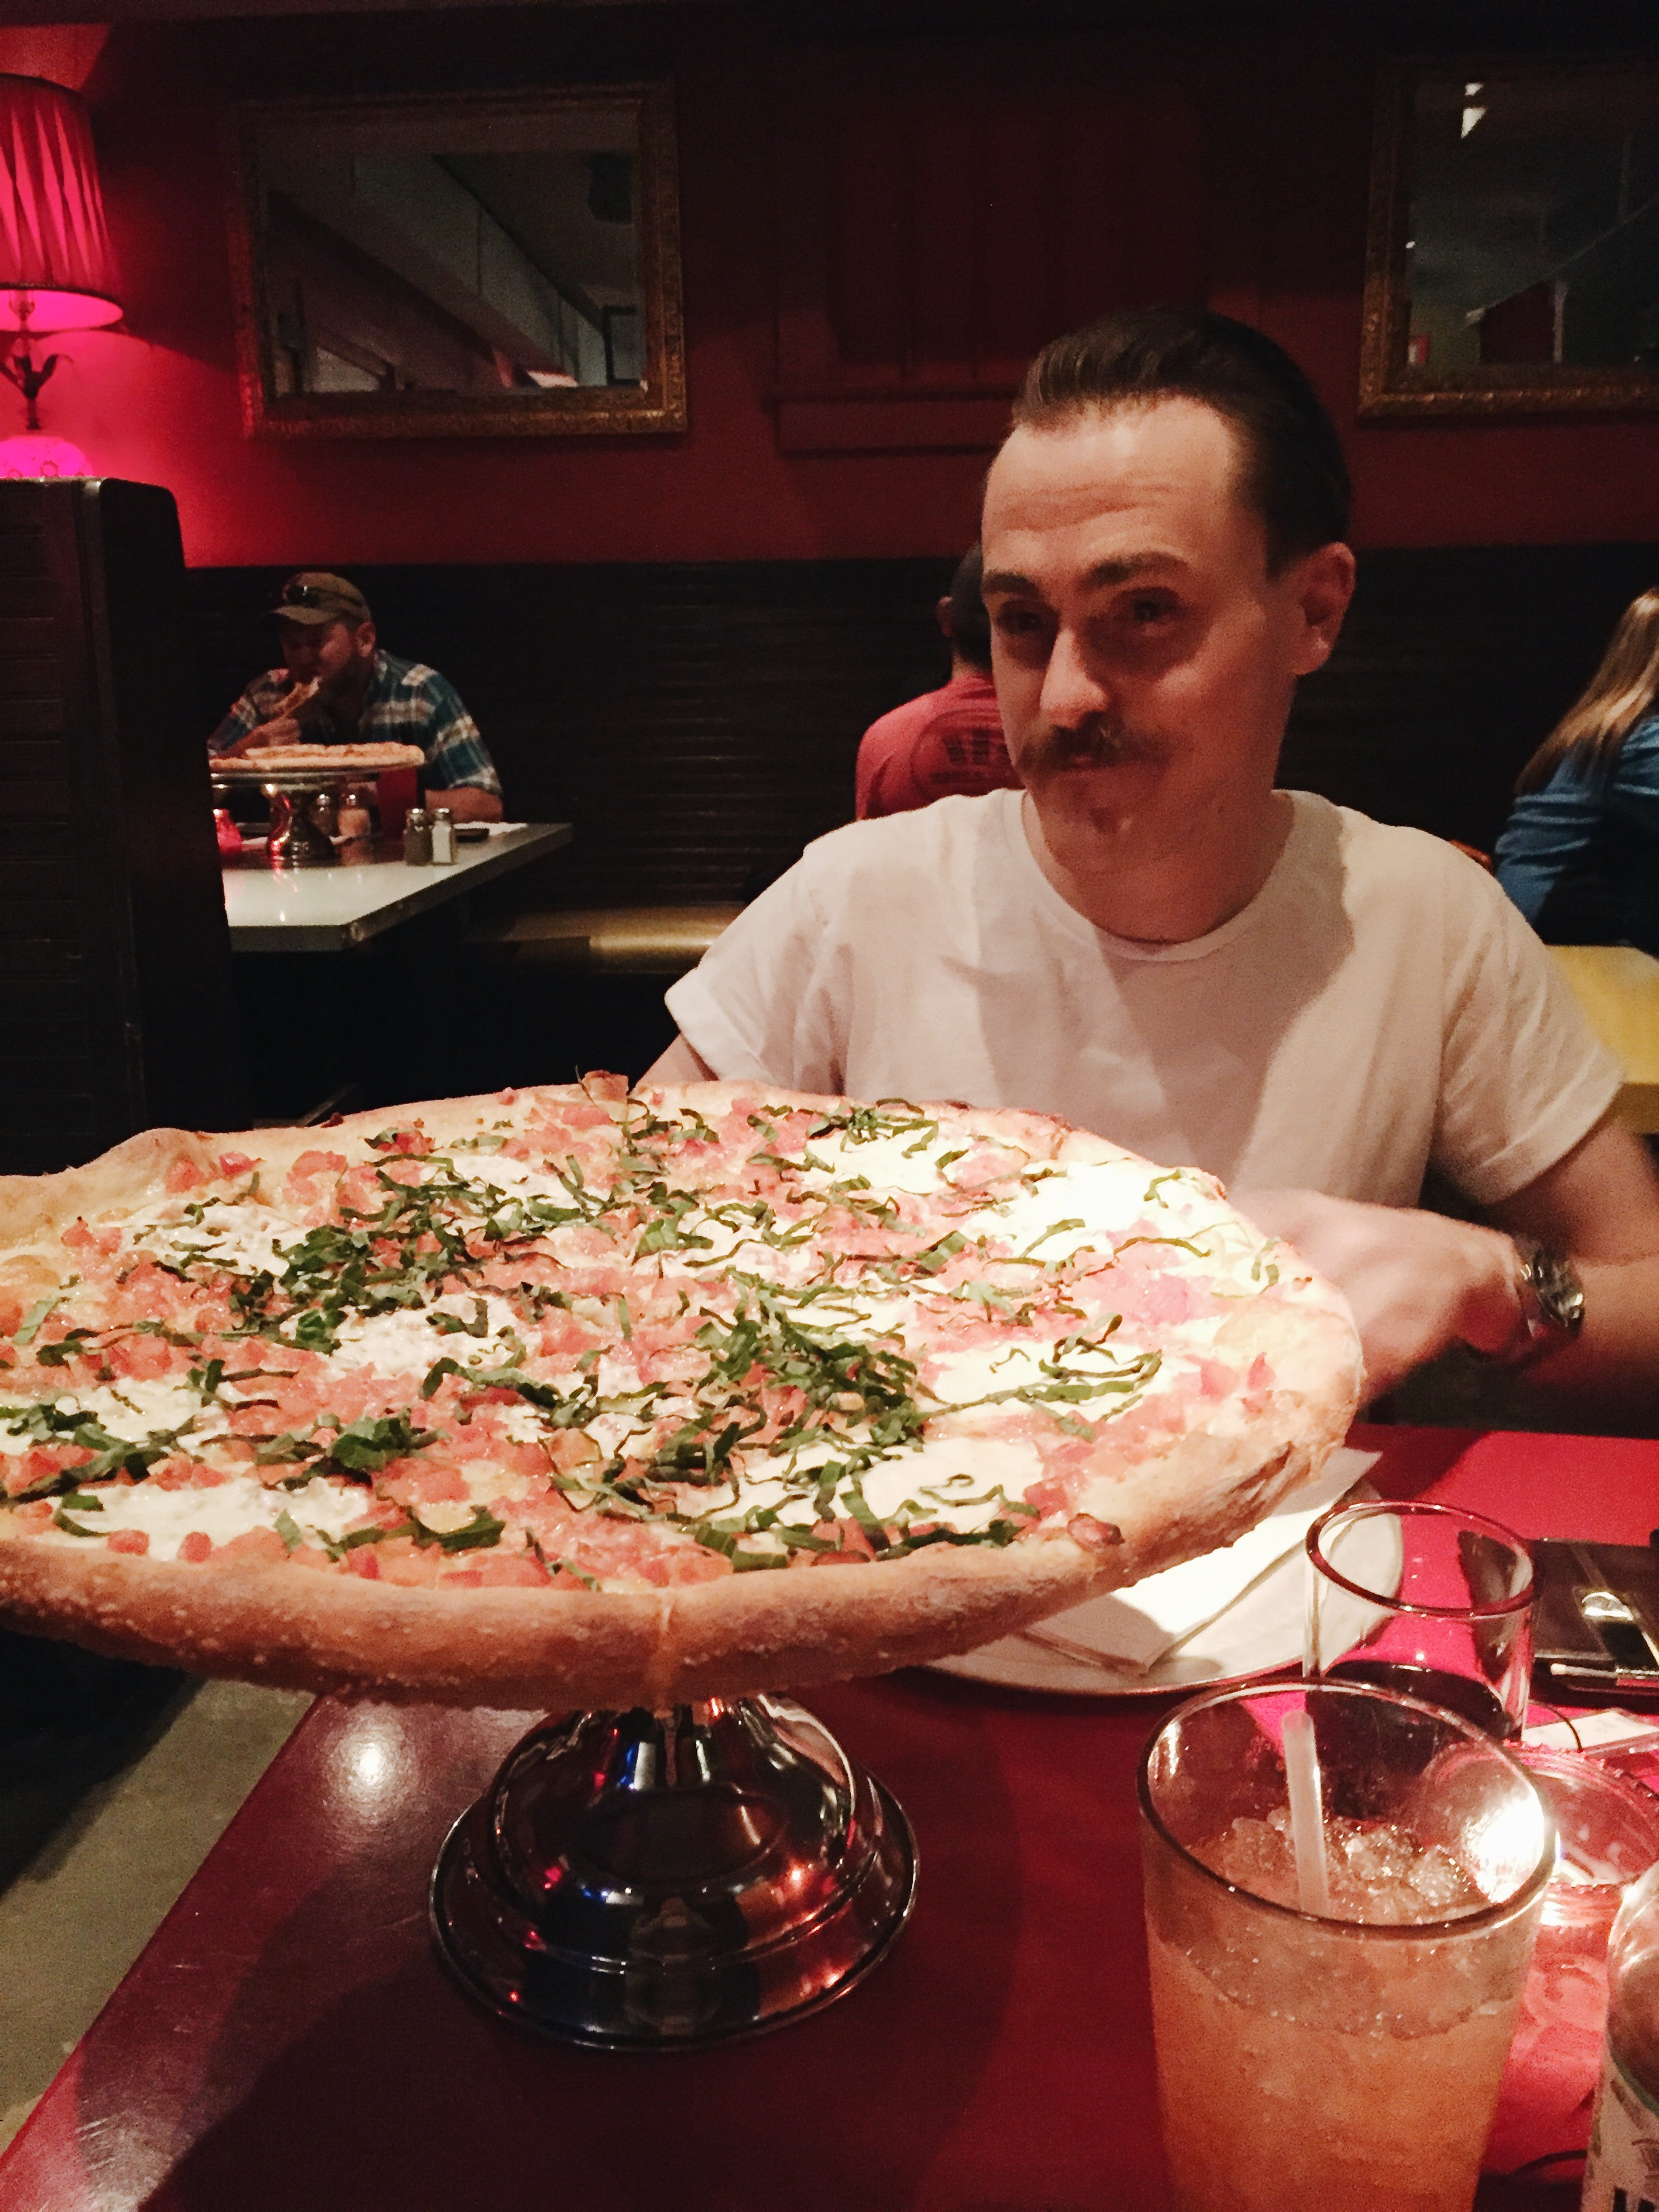 Home Slice,1415 S Congress Ave - Everyone goes on about this pizza and it certainly didn't disappoint when it comes to size - everything's bigger in Texas! We stuck with the classic margherita and it was delicious.